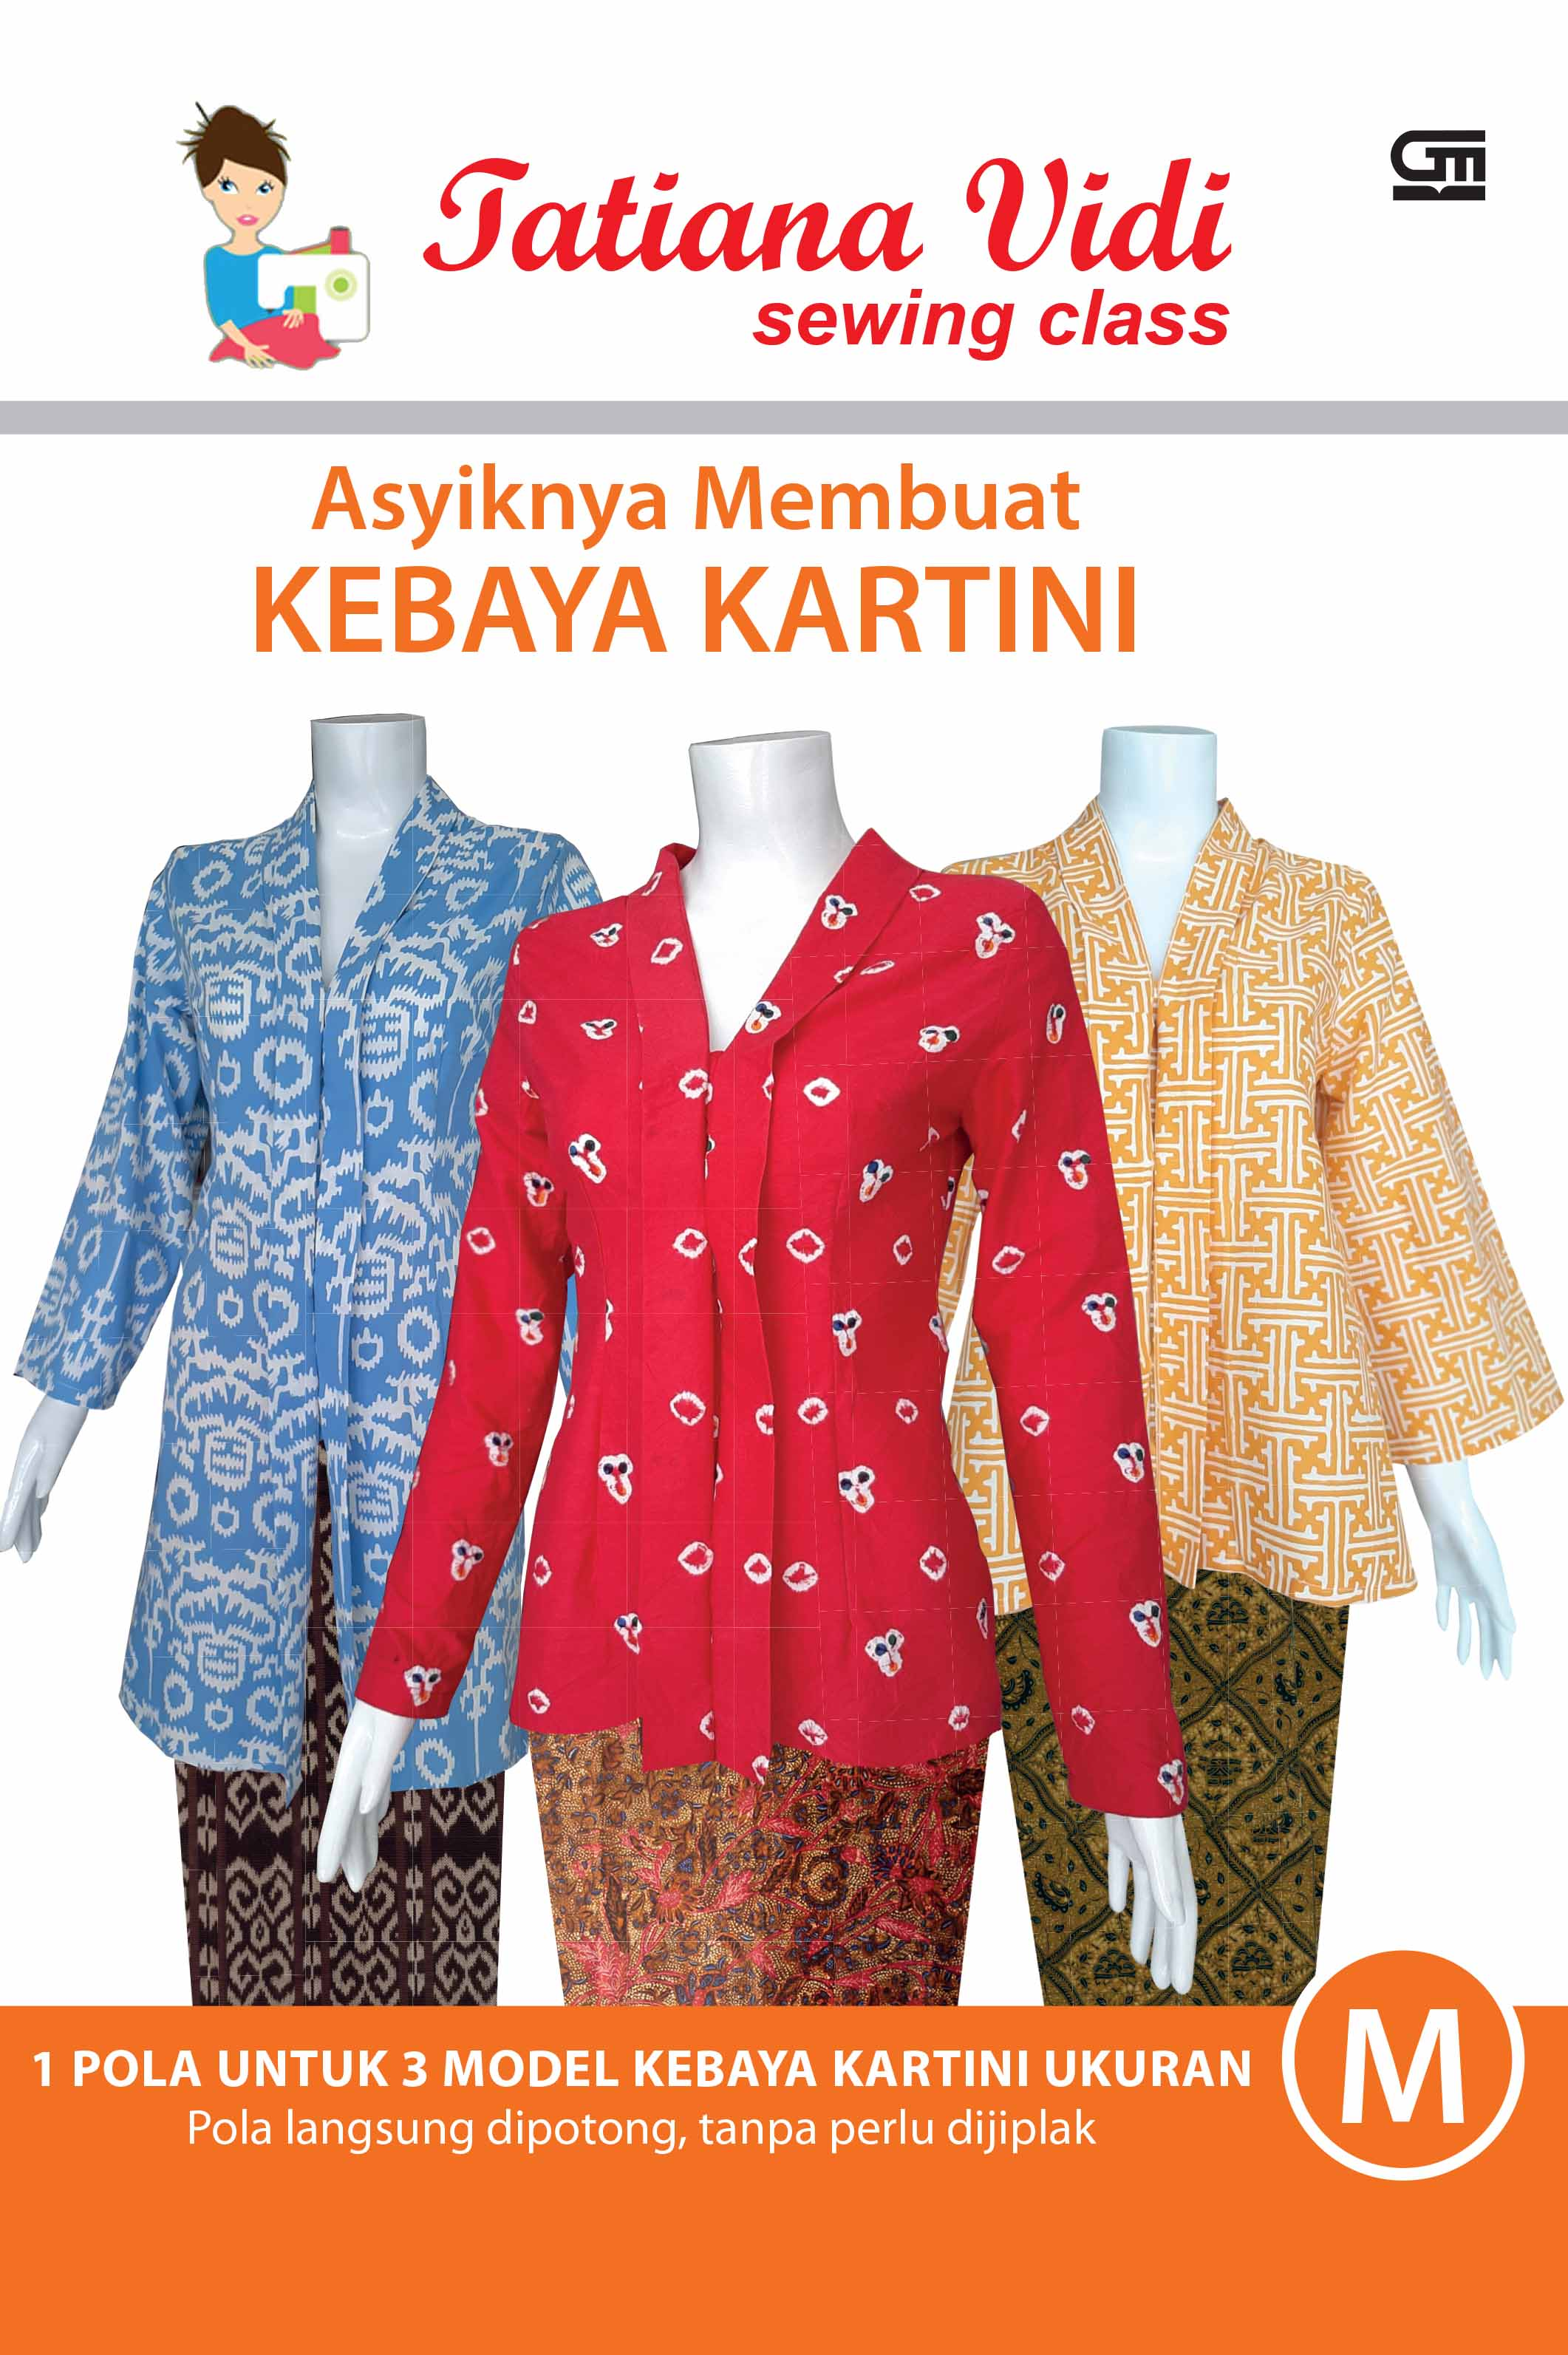 Category Gramedia Pustaka Utama